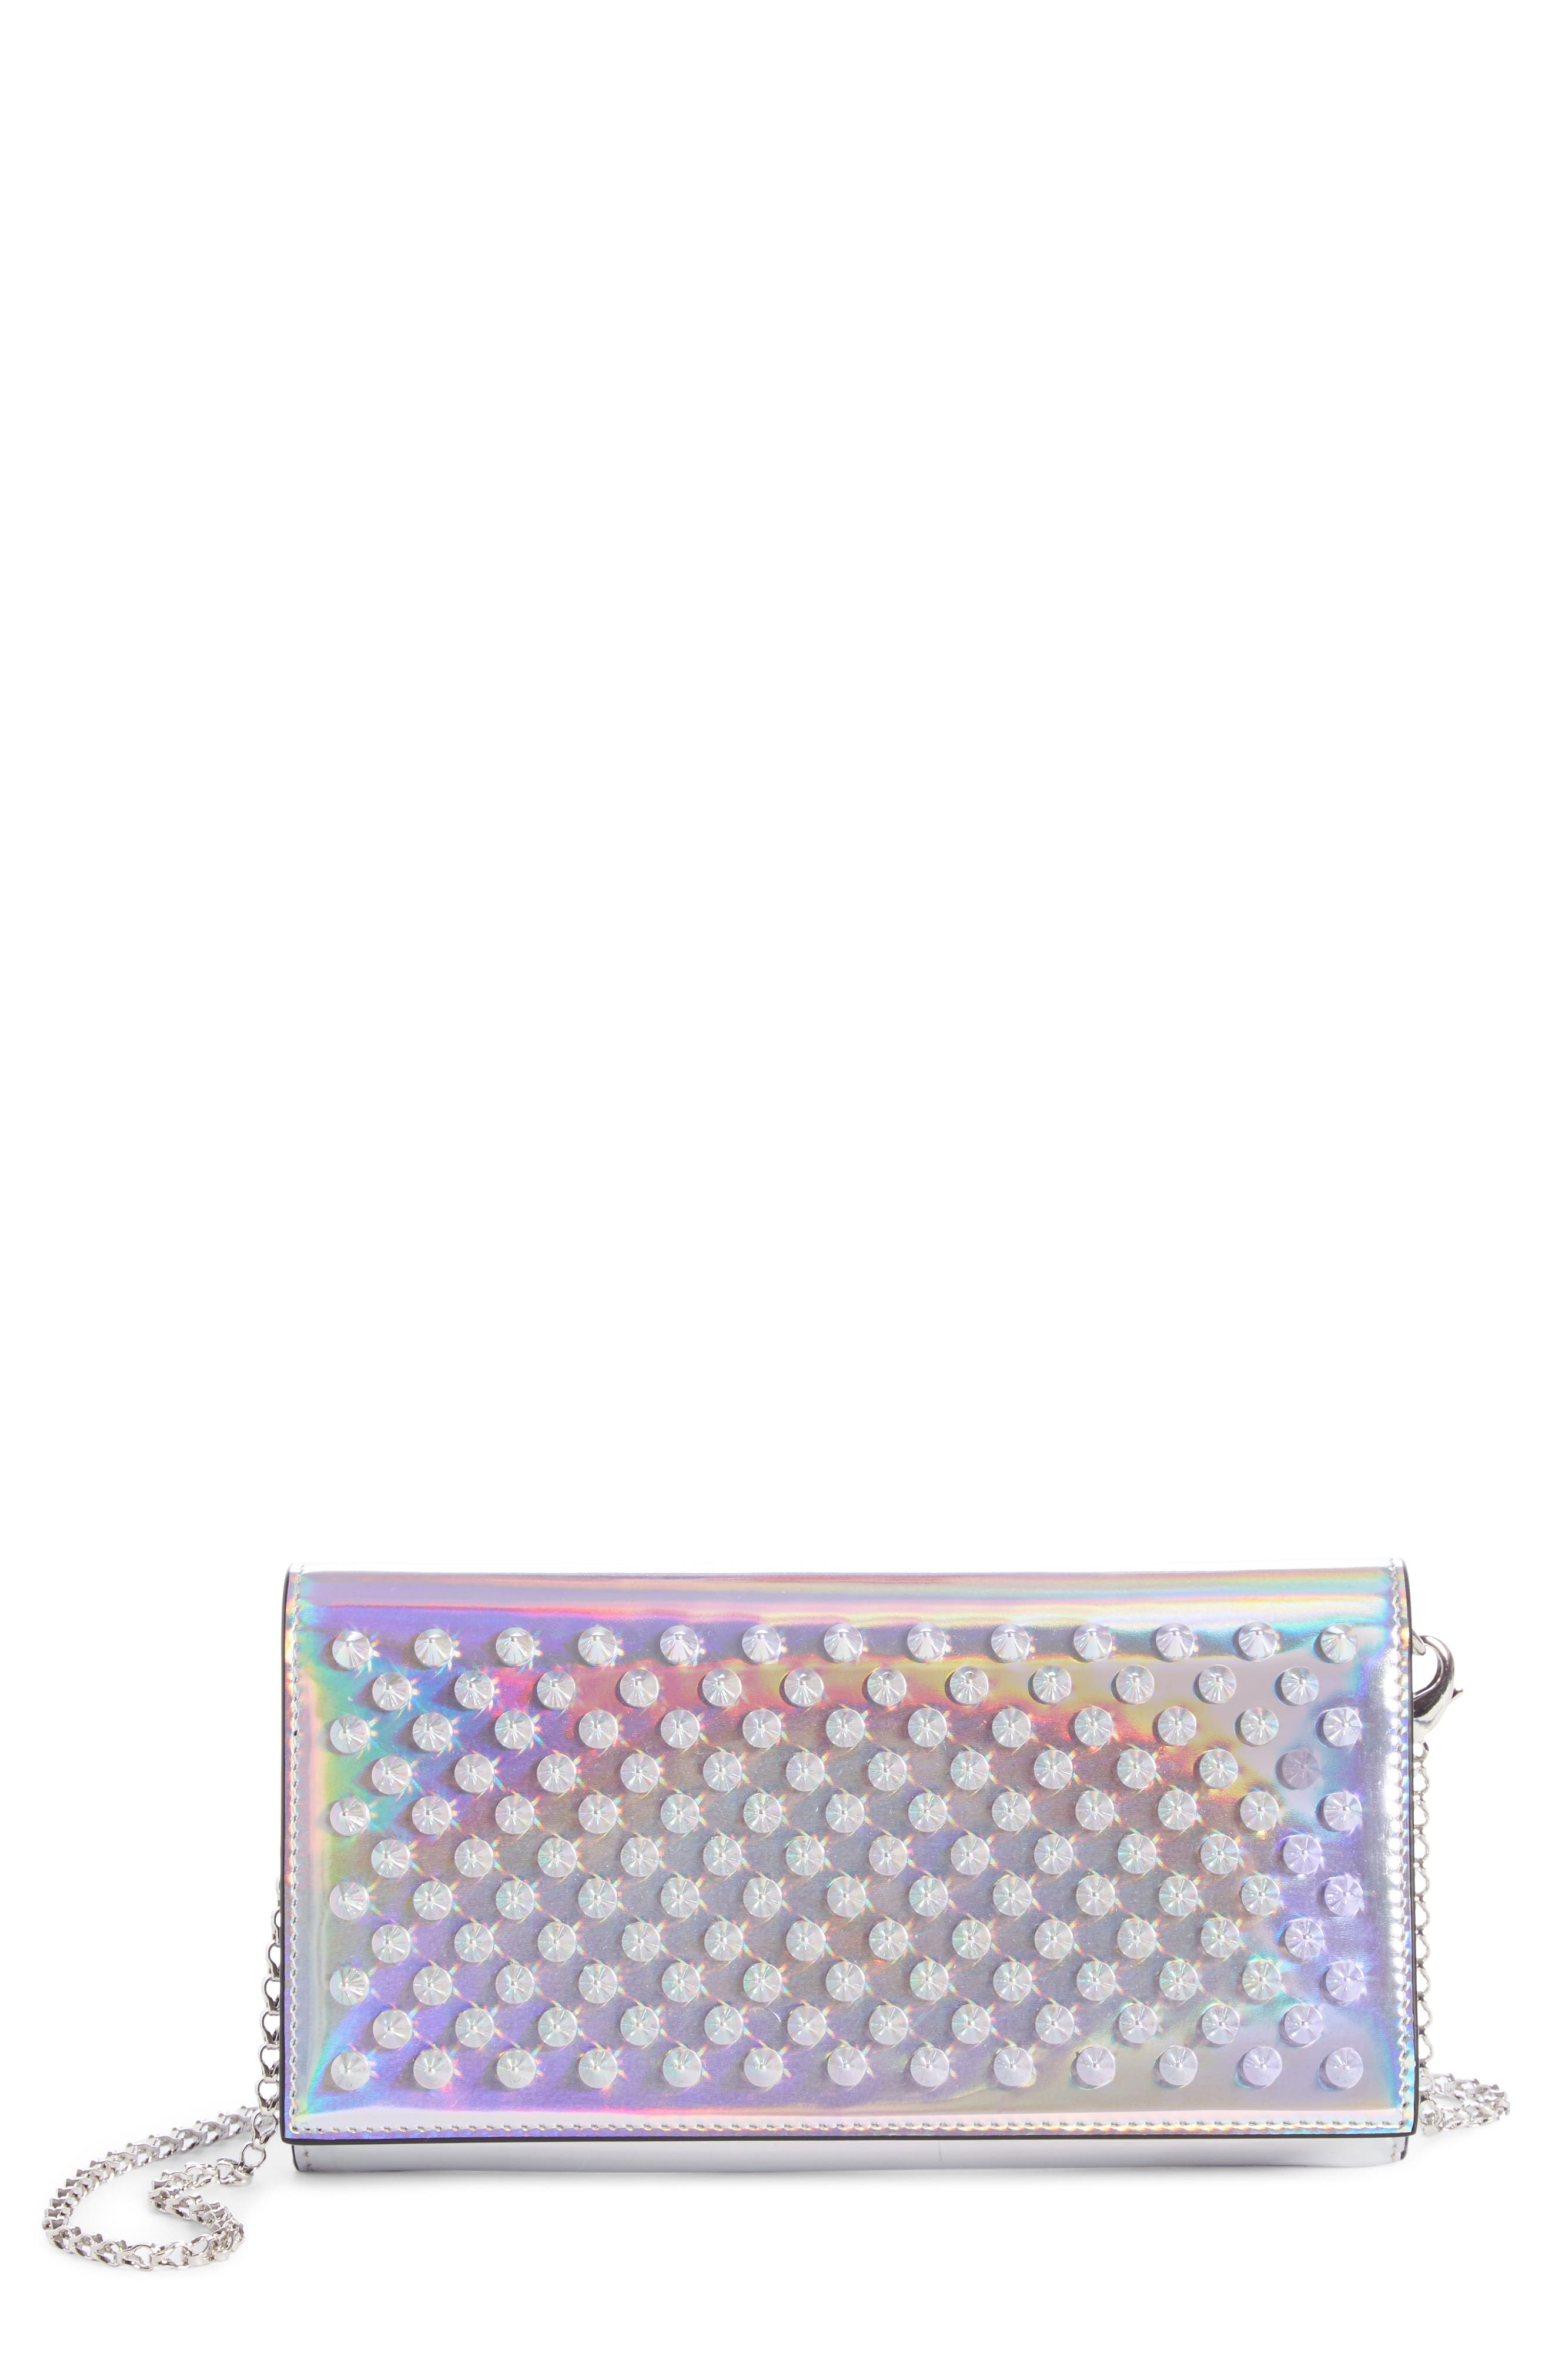 CHRISTIAN LOUBOUTIN, Boudoir Metallic Leather Wallet on a Chain, Main thumbnail 1, color, SILVER/ SILVER AB